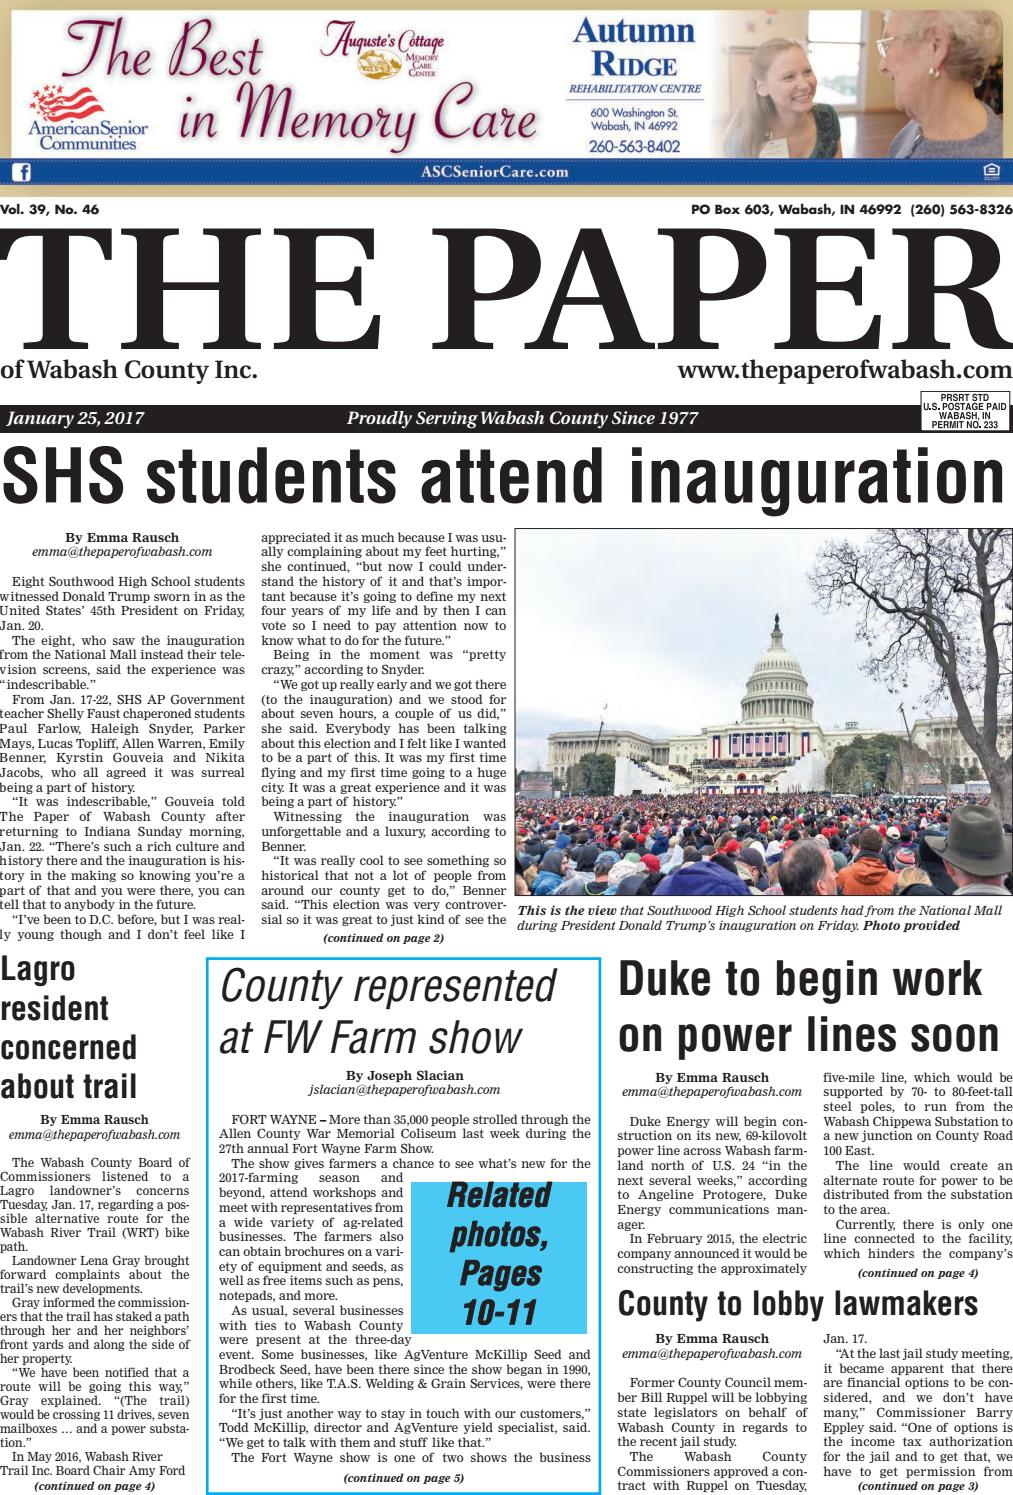 Indiana wabash county lagro - The Paper Of Wabash County Jan 25 2017 Issue By The Paper Of Wabash County Issuu